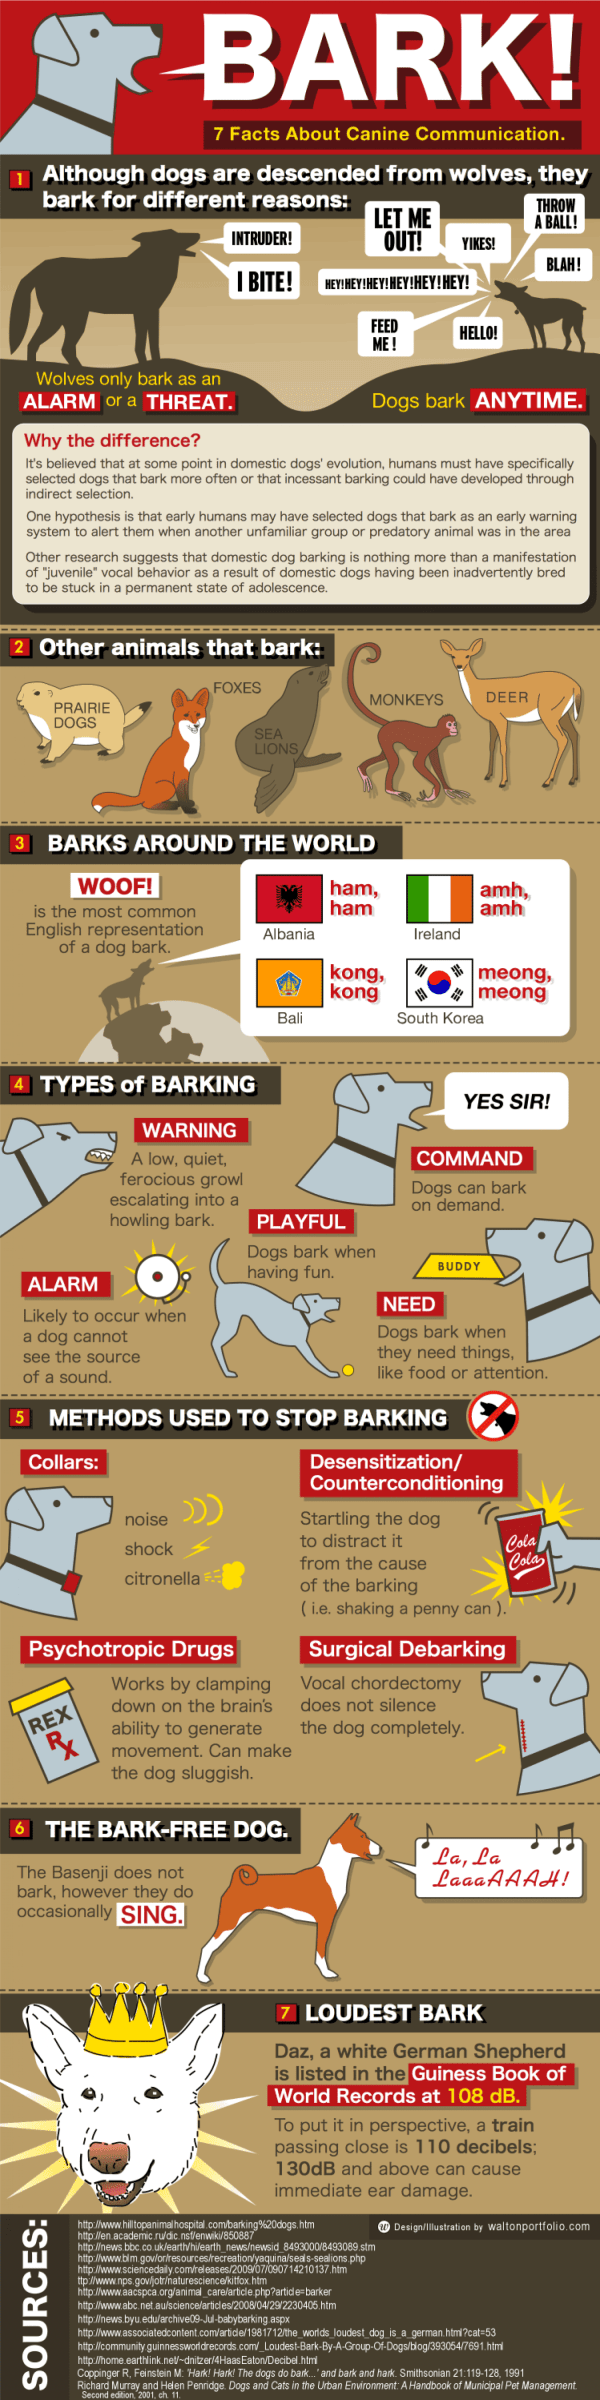 Infographic About Dogs